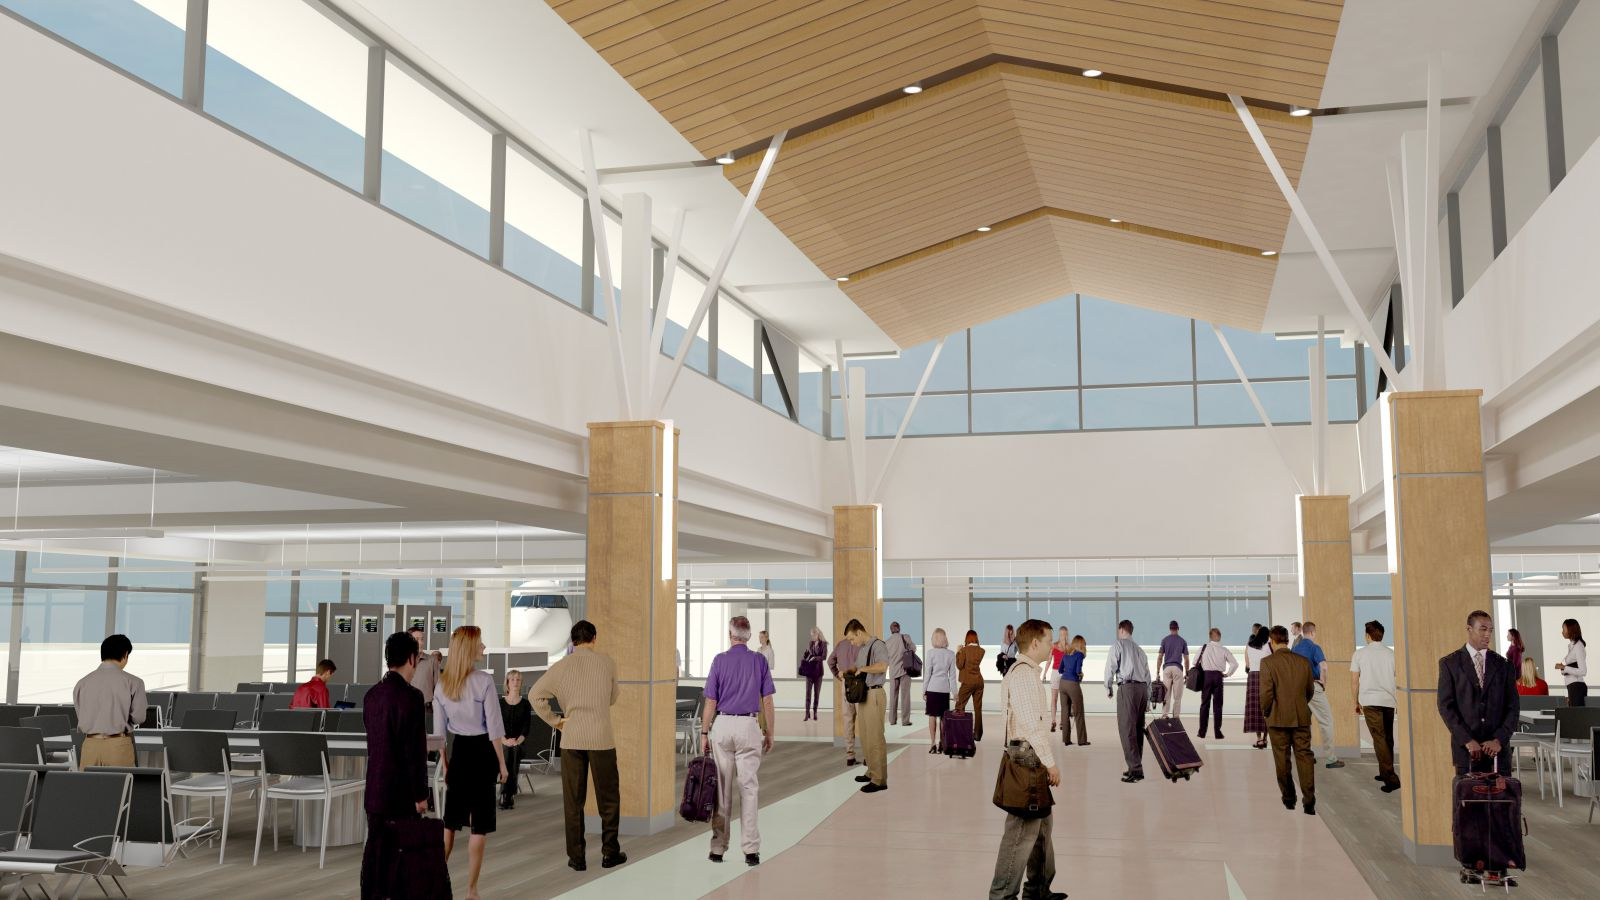 rendering of inside of terminal